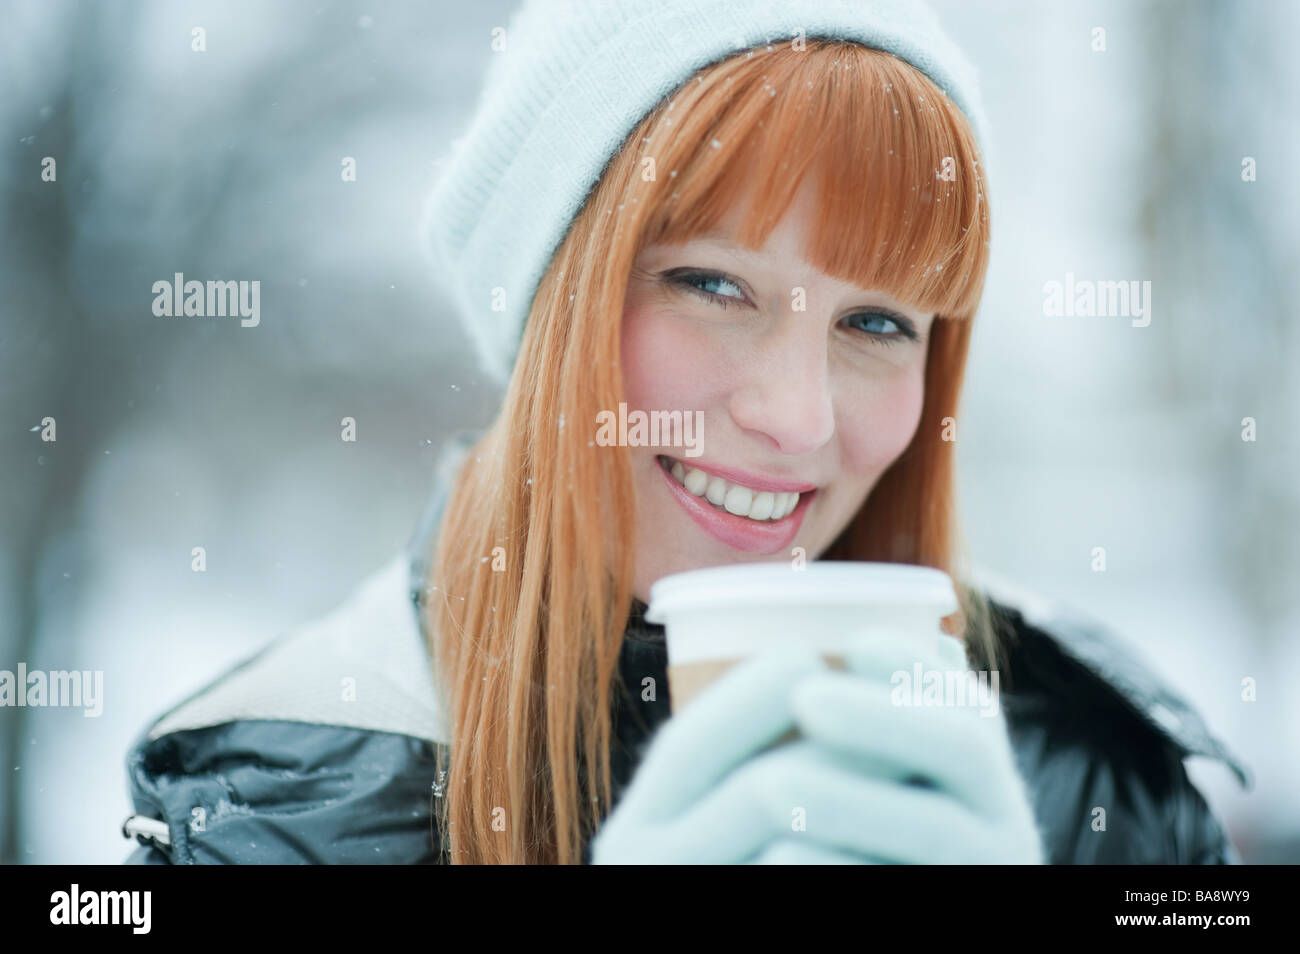 Woman drinking coffee in snow - Stock Image